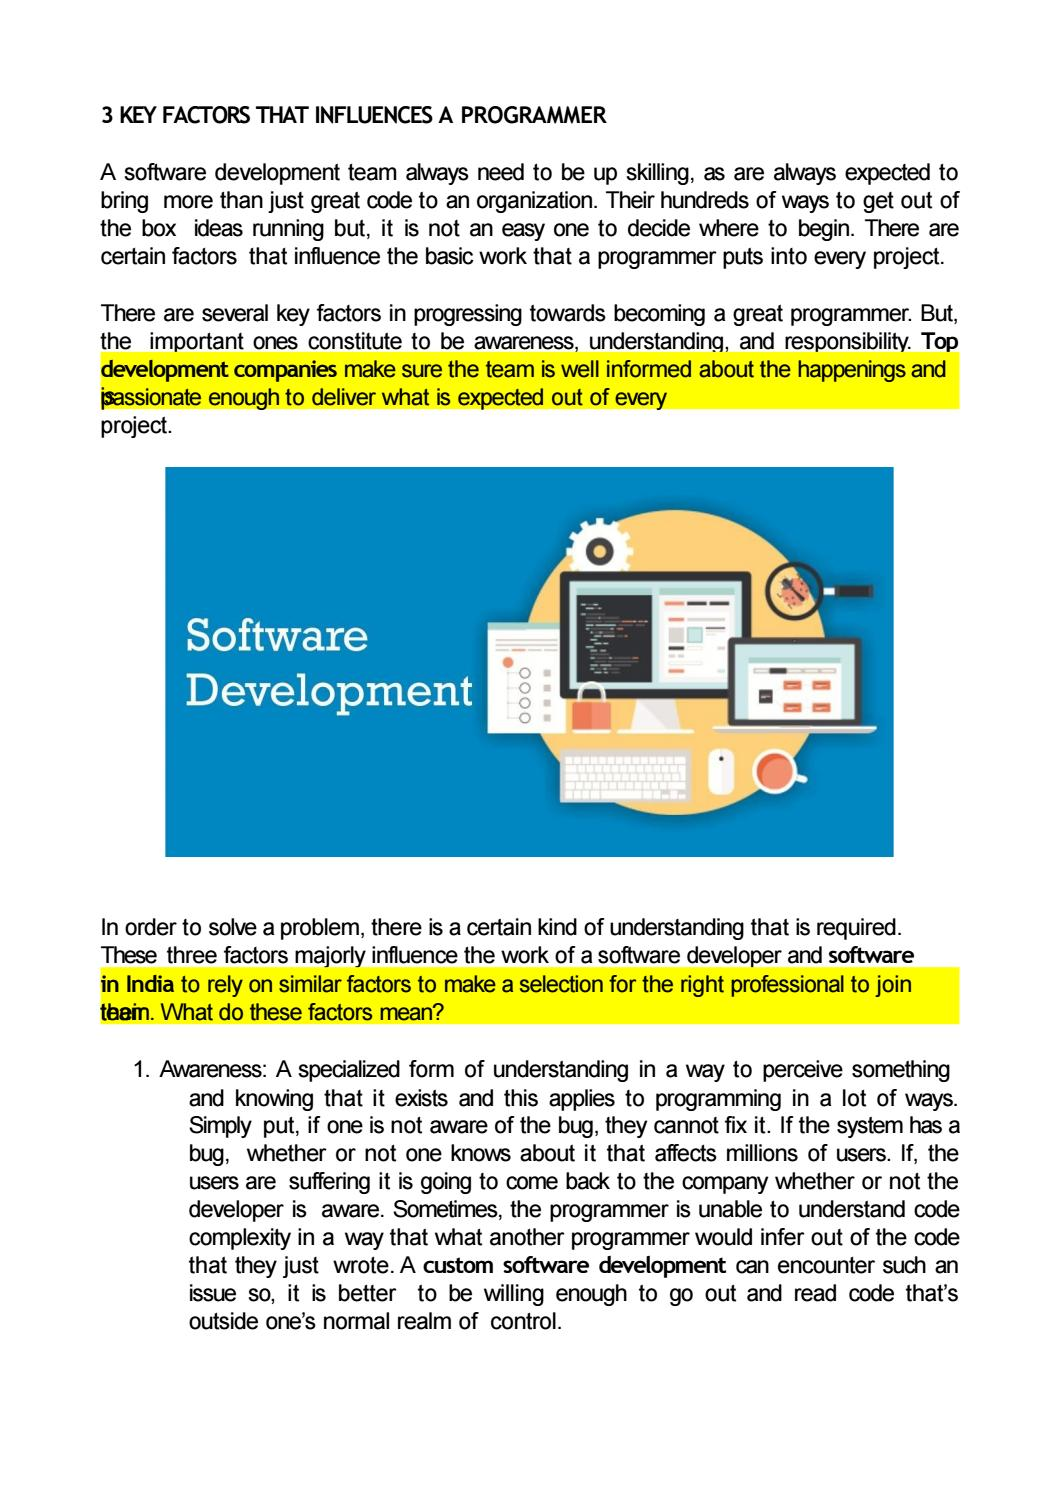 Software Developer Companies In Custom Software Development Company In India By Depti Gaur Issuu